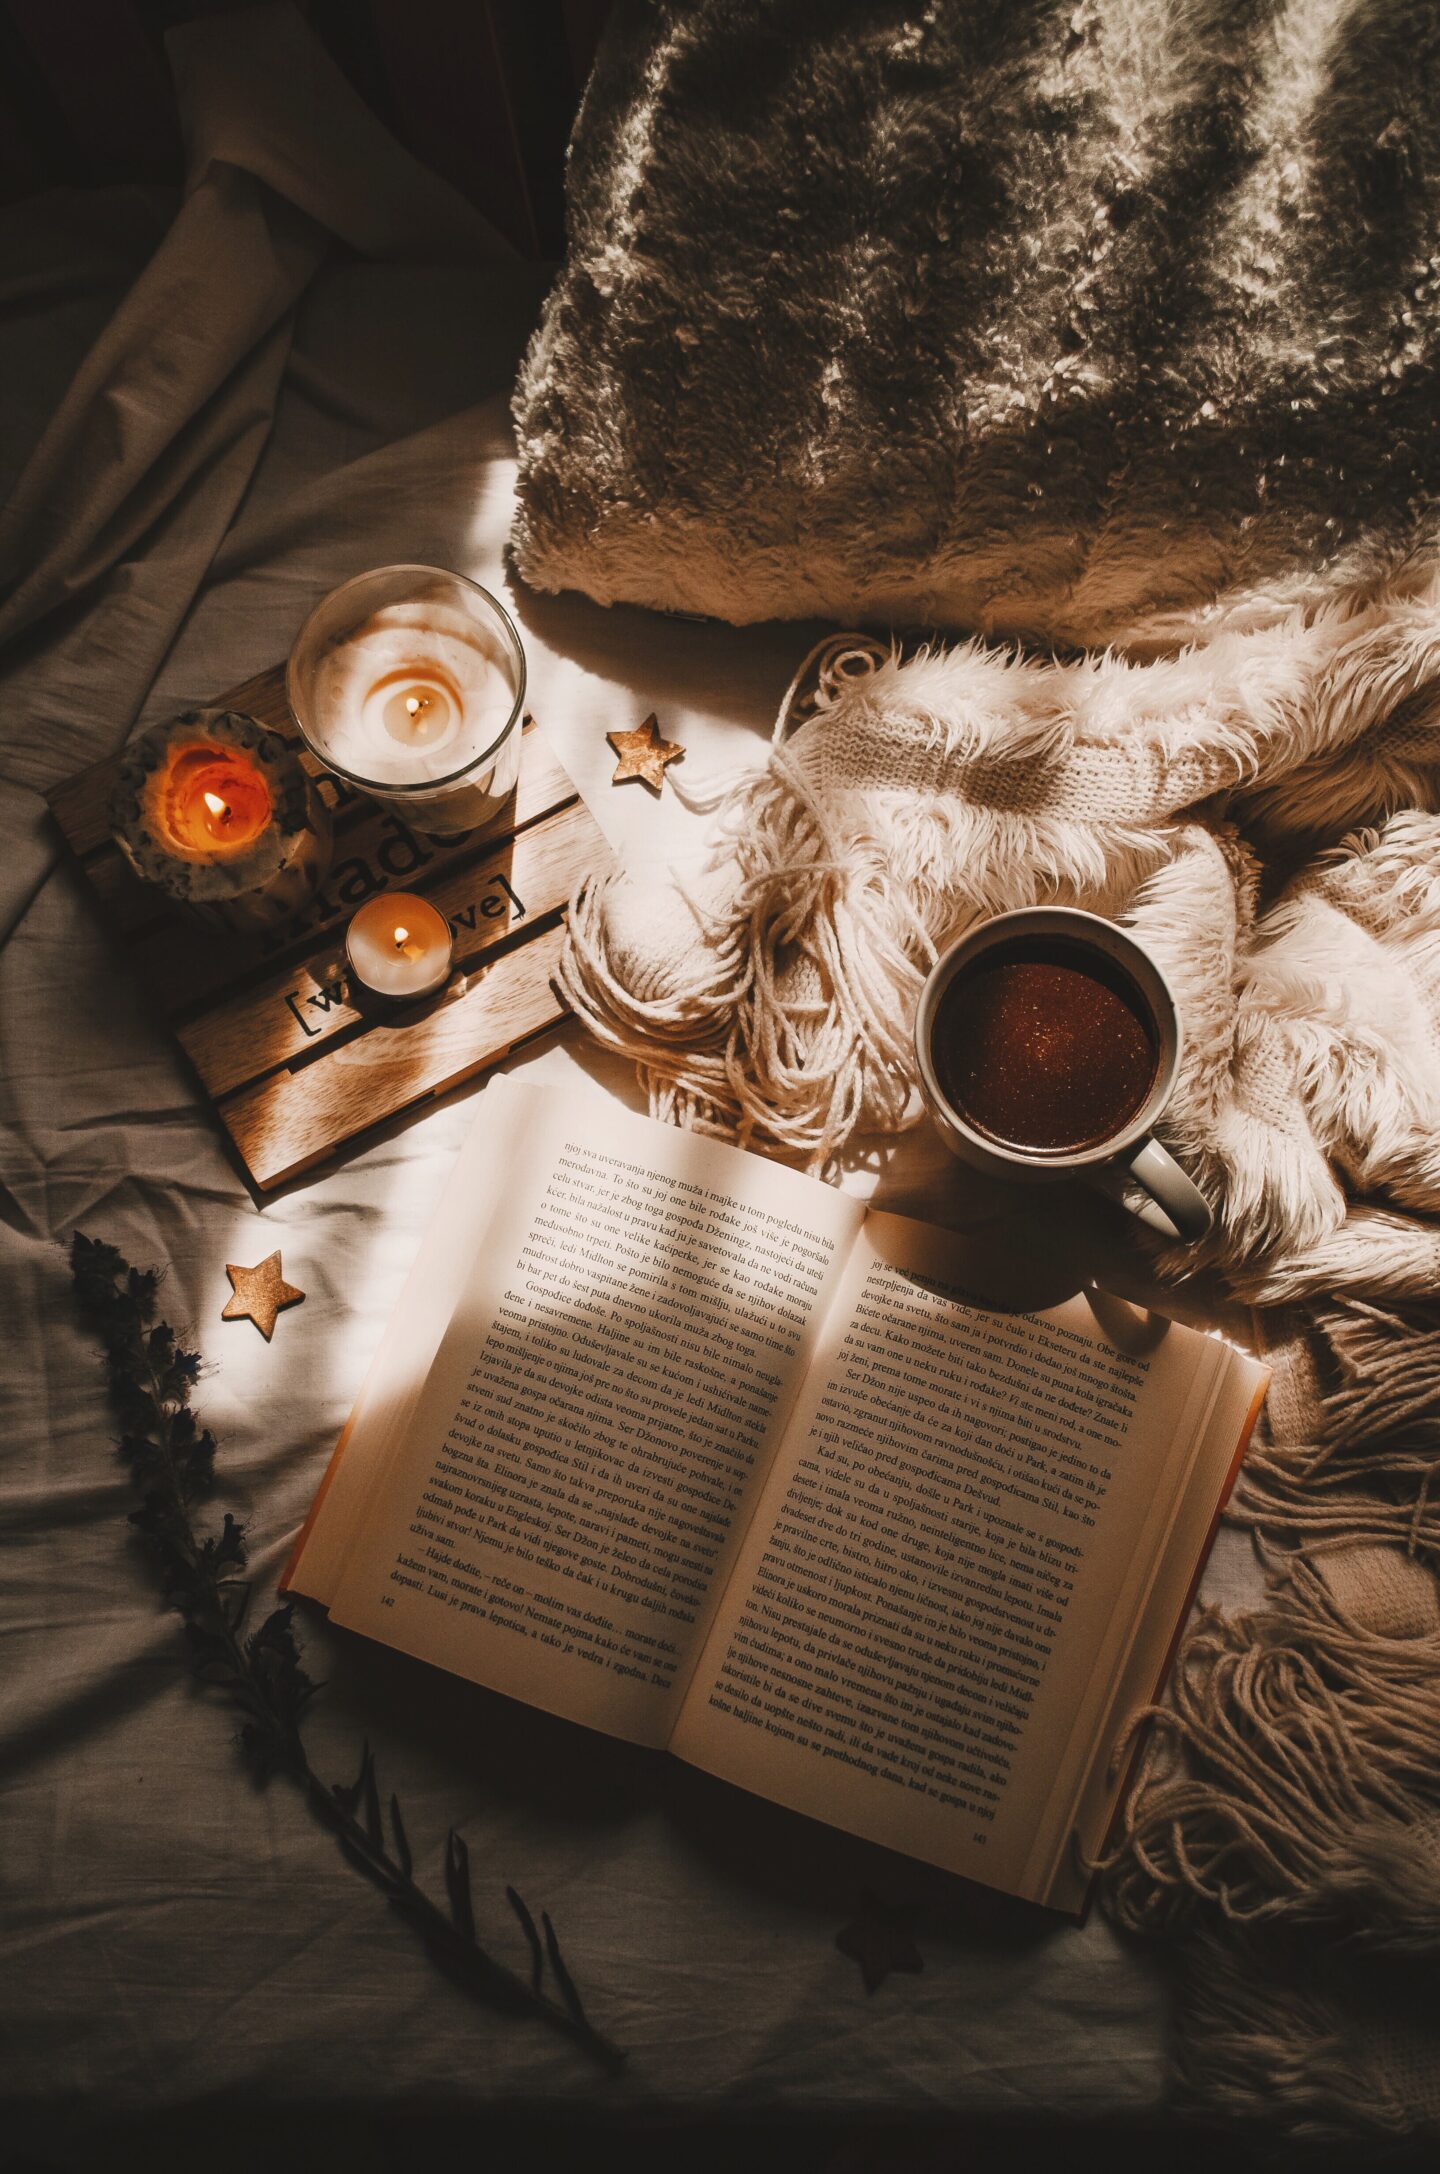 Candles and a book for a chill bedroom vibe. Get inspired to decorate your bedroom into an amazing and relaxing atmosphere.